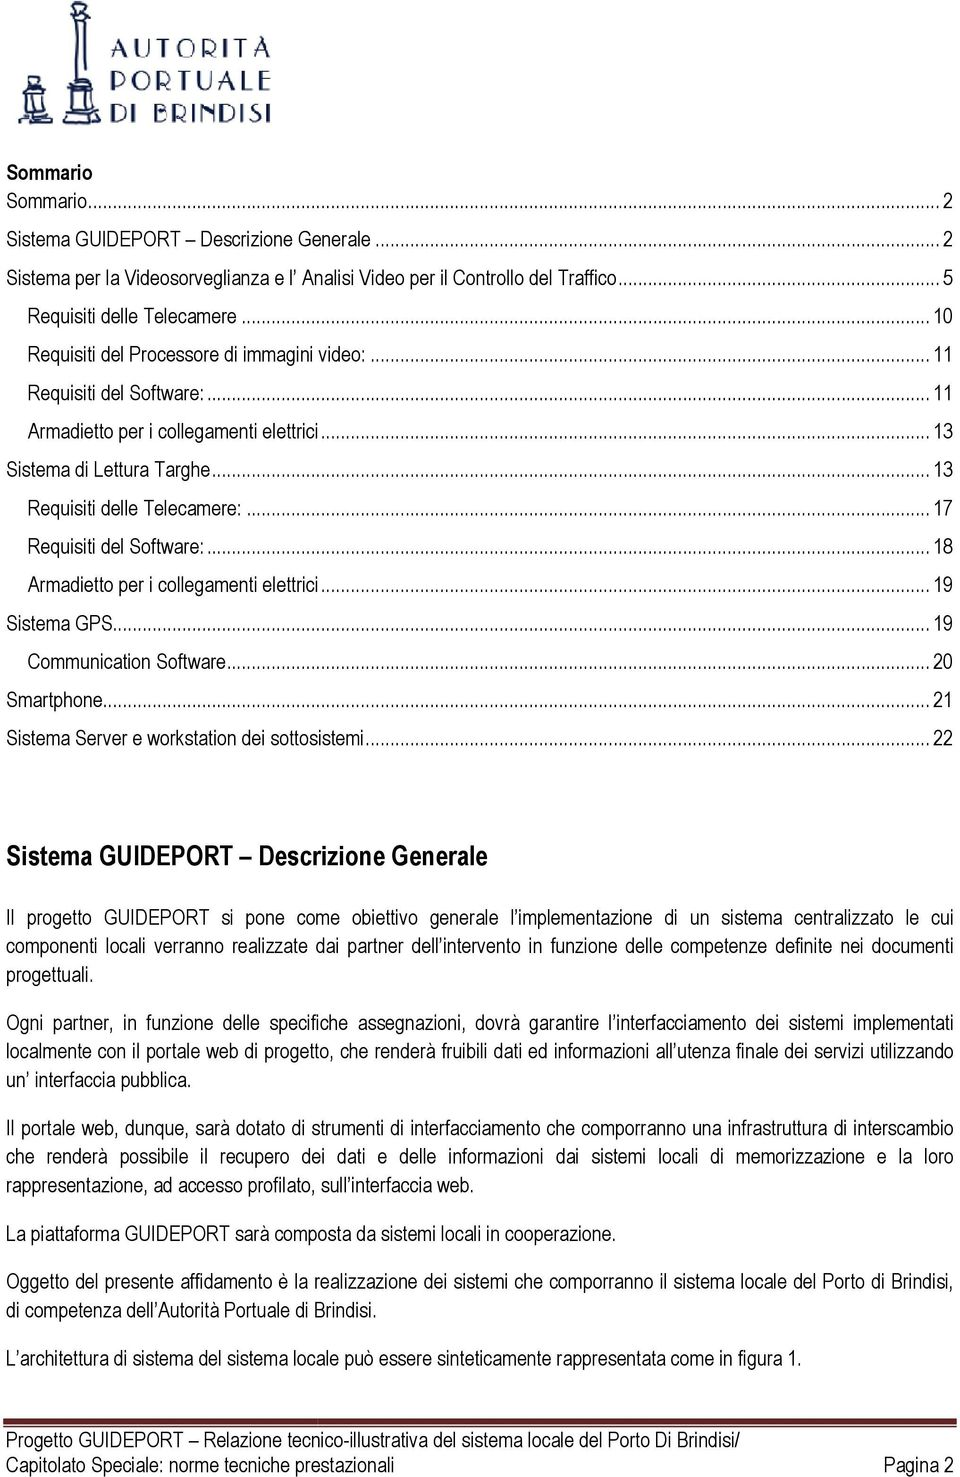 .. 17 Requisiti del Software:... 18 Armadietto per i collegamenti elettrici... 19 Sistema GPS... 19 Communication Software... 20 Smartphone...... 21 Sistema Server e workstation dei sottosistemi.